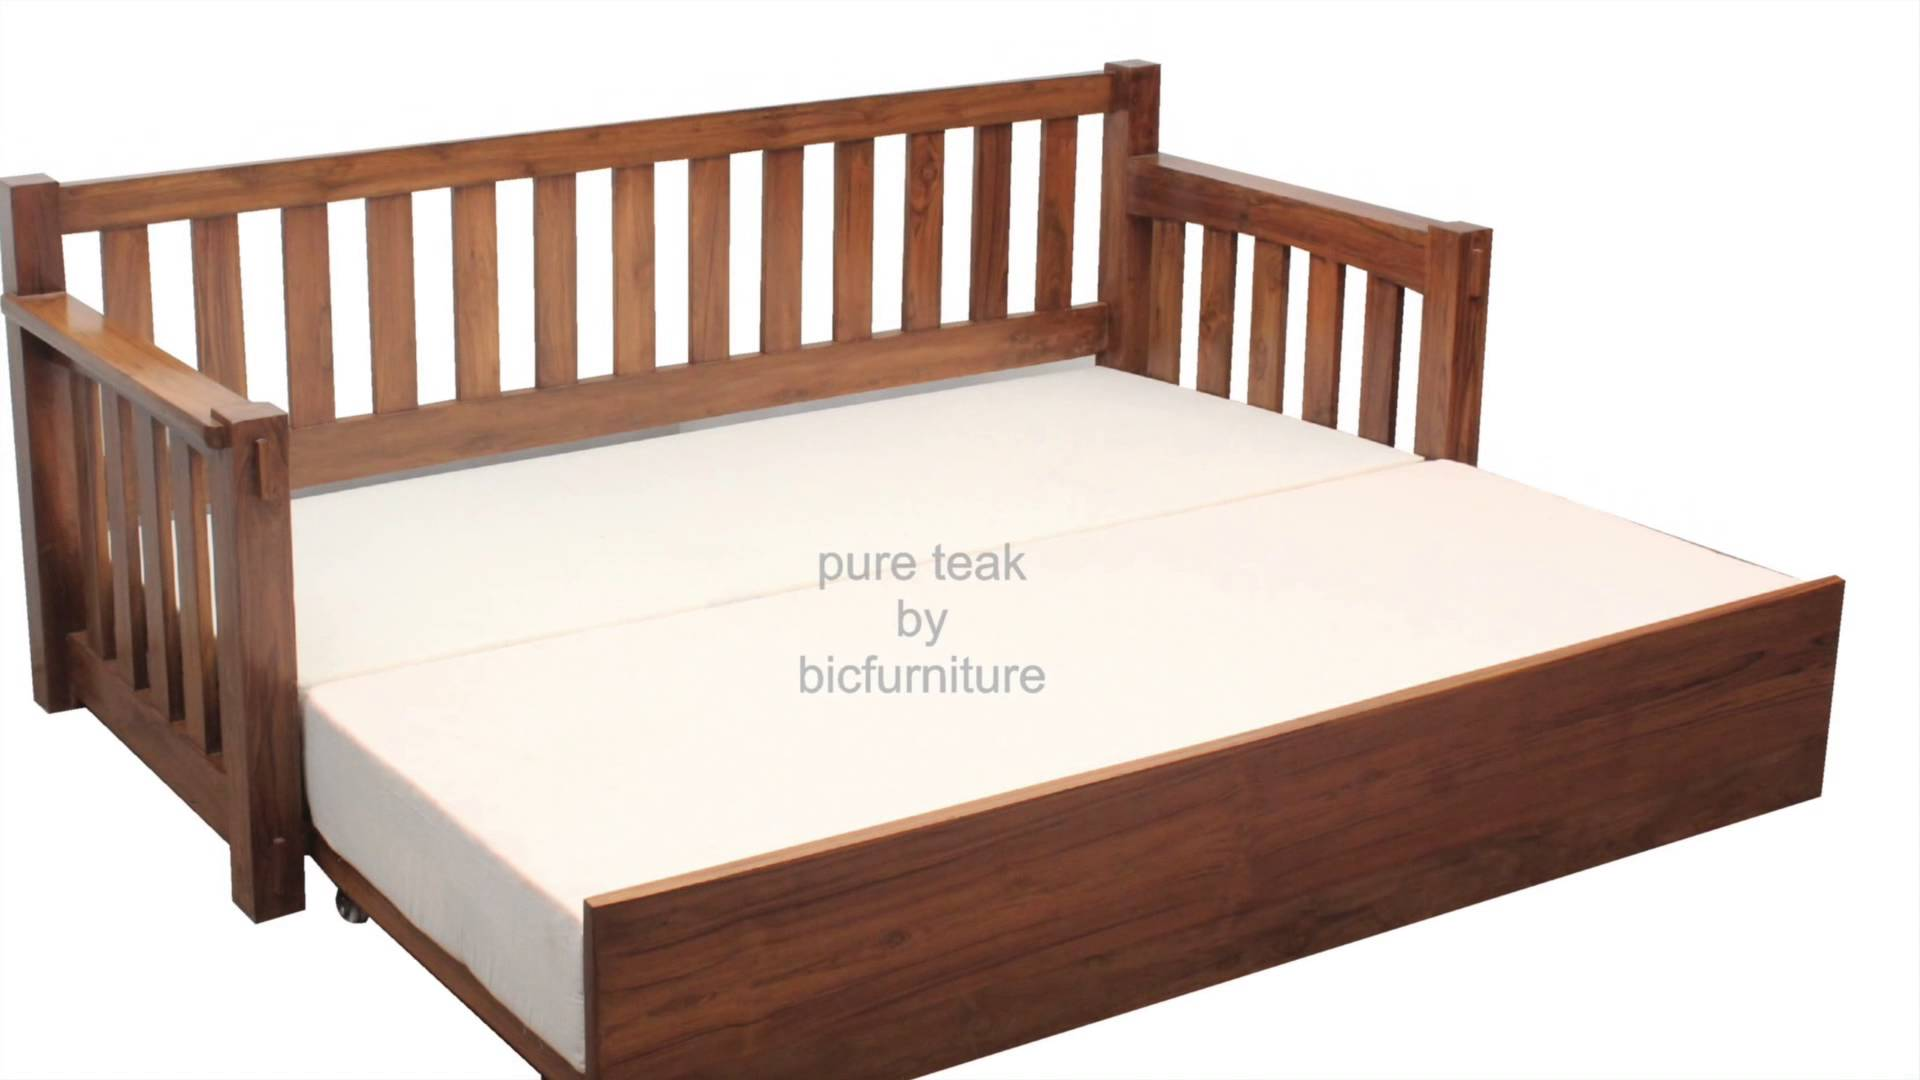 sofa pull out bed frame fatboy singapore wood futon solid new bi fold